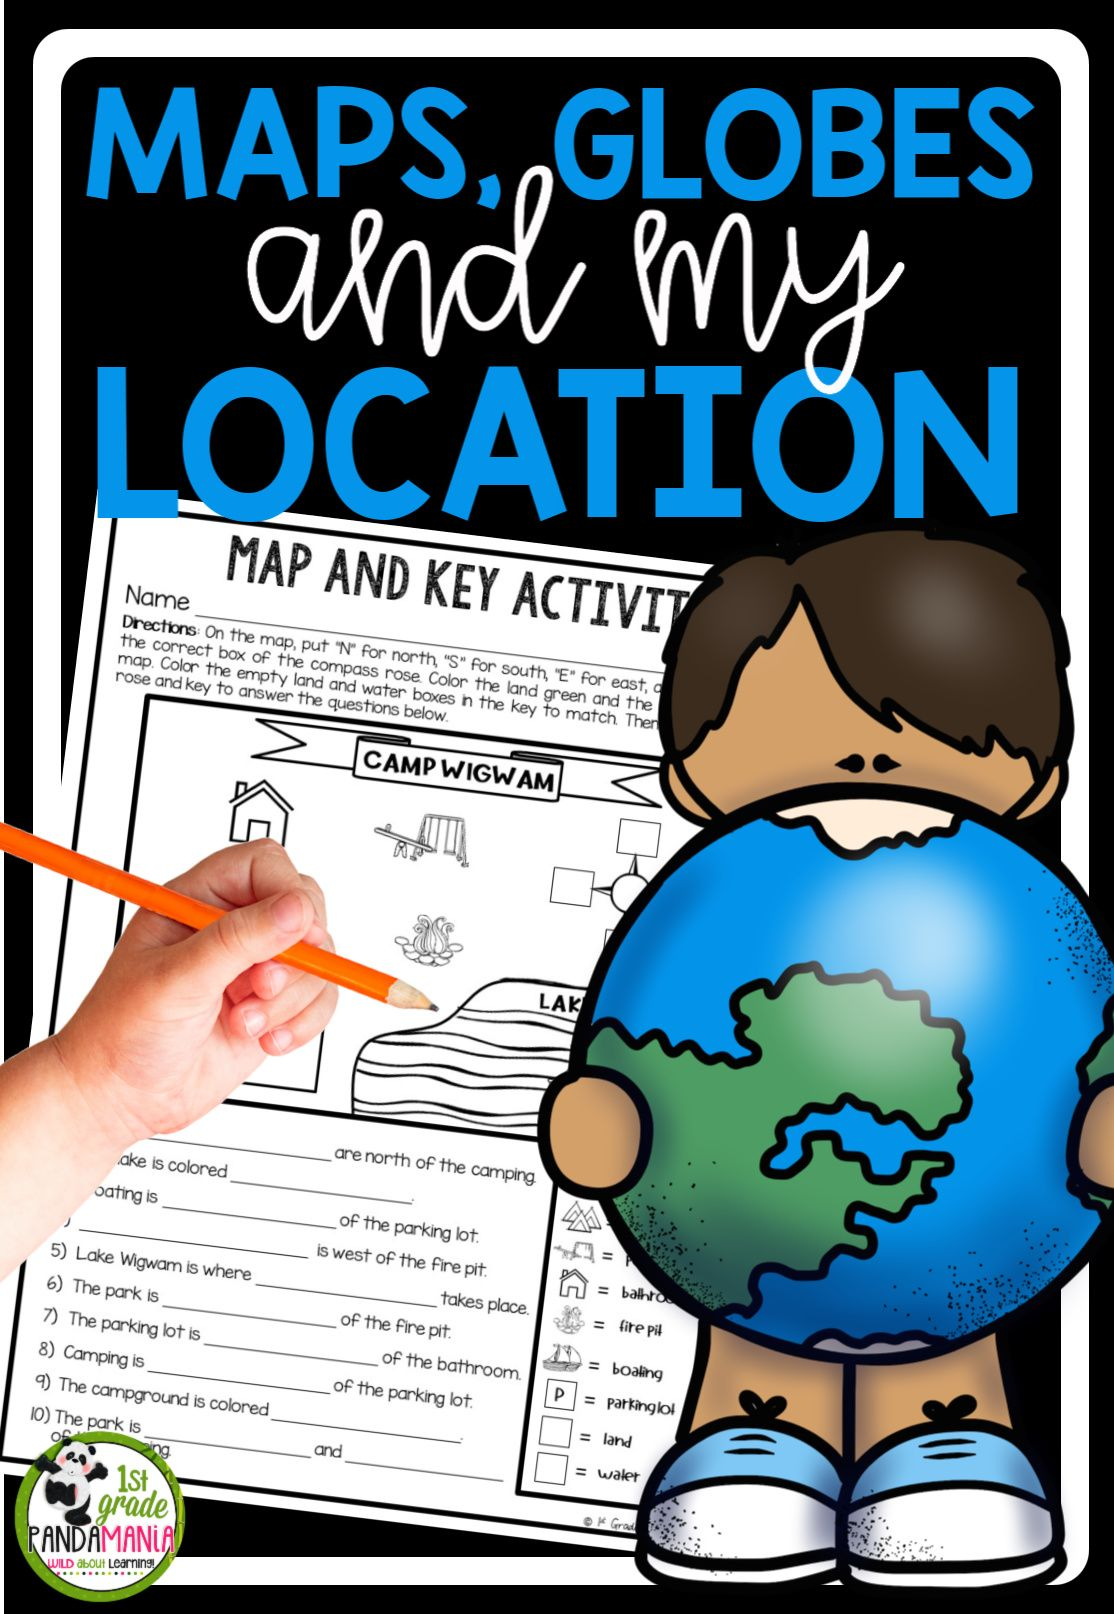 Maps Globes And My Location A 1st Grade Geography Unit